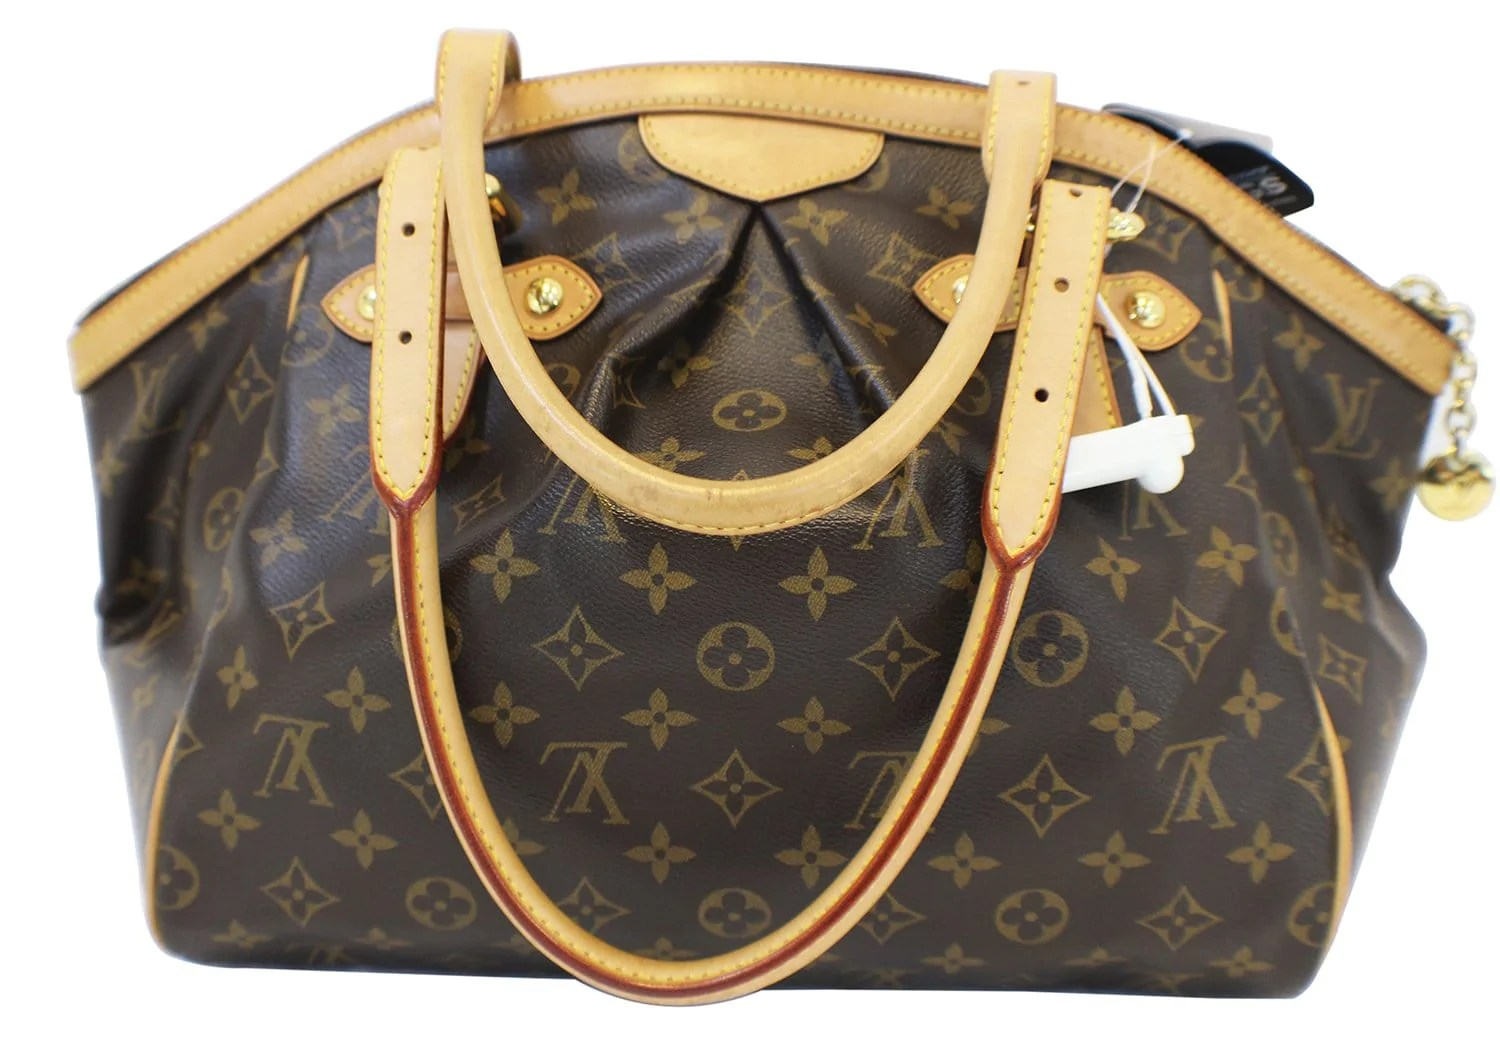 Tivoli Gm Authentic Louis Vuitton Monogram Tivoli Gm Brown Tote Shoulder Bag E31